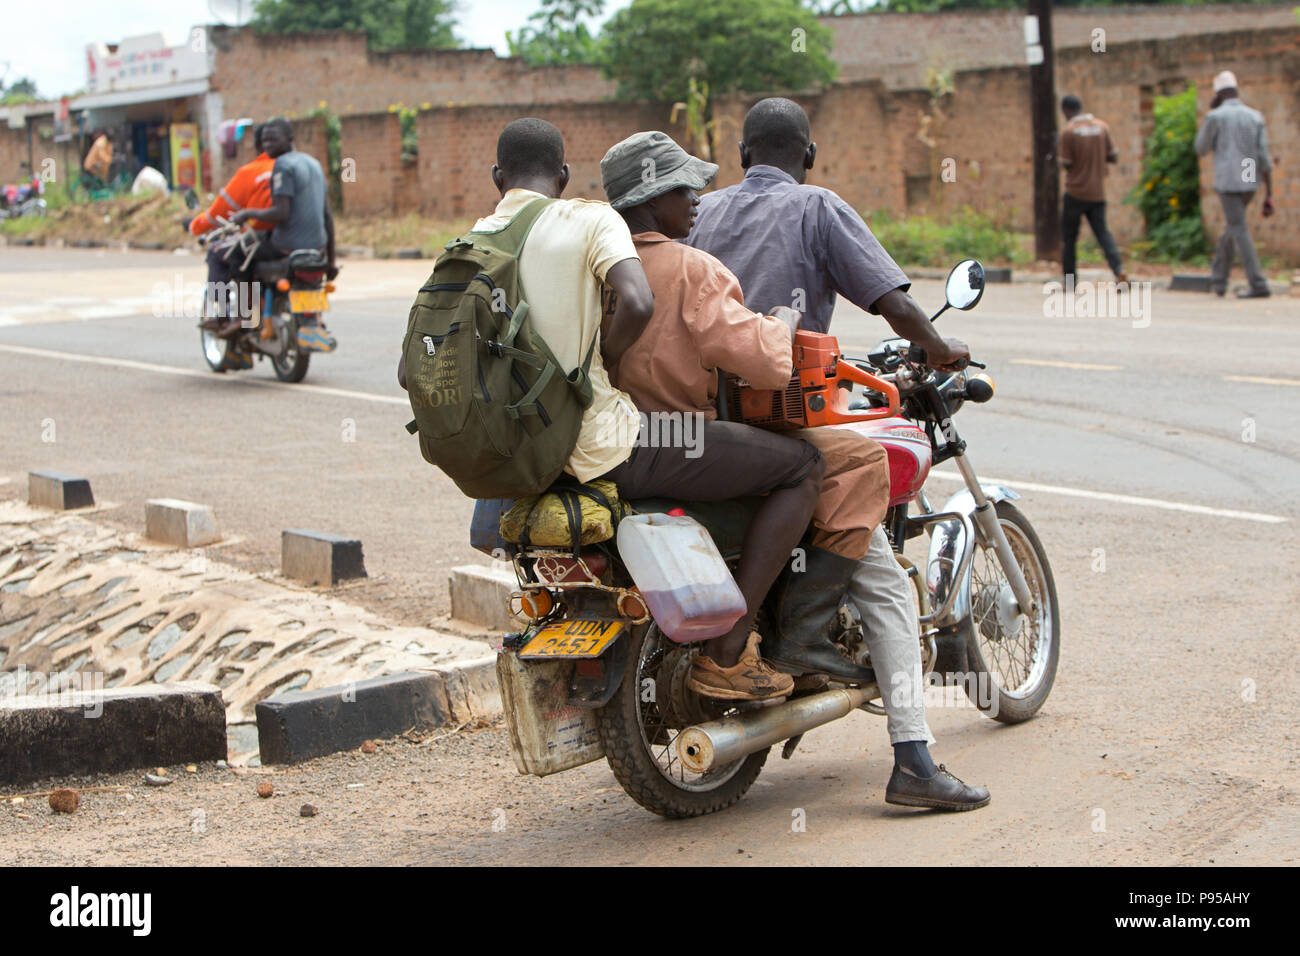 Kamdini, Uganda - Street scene with people and motorcycles. Three men ride a motorcycle. - Stock Image